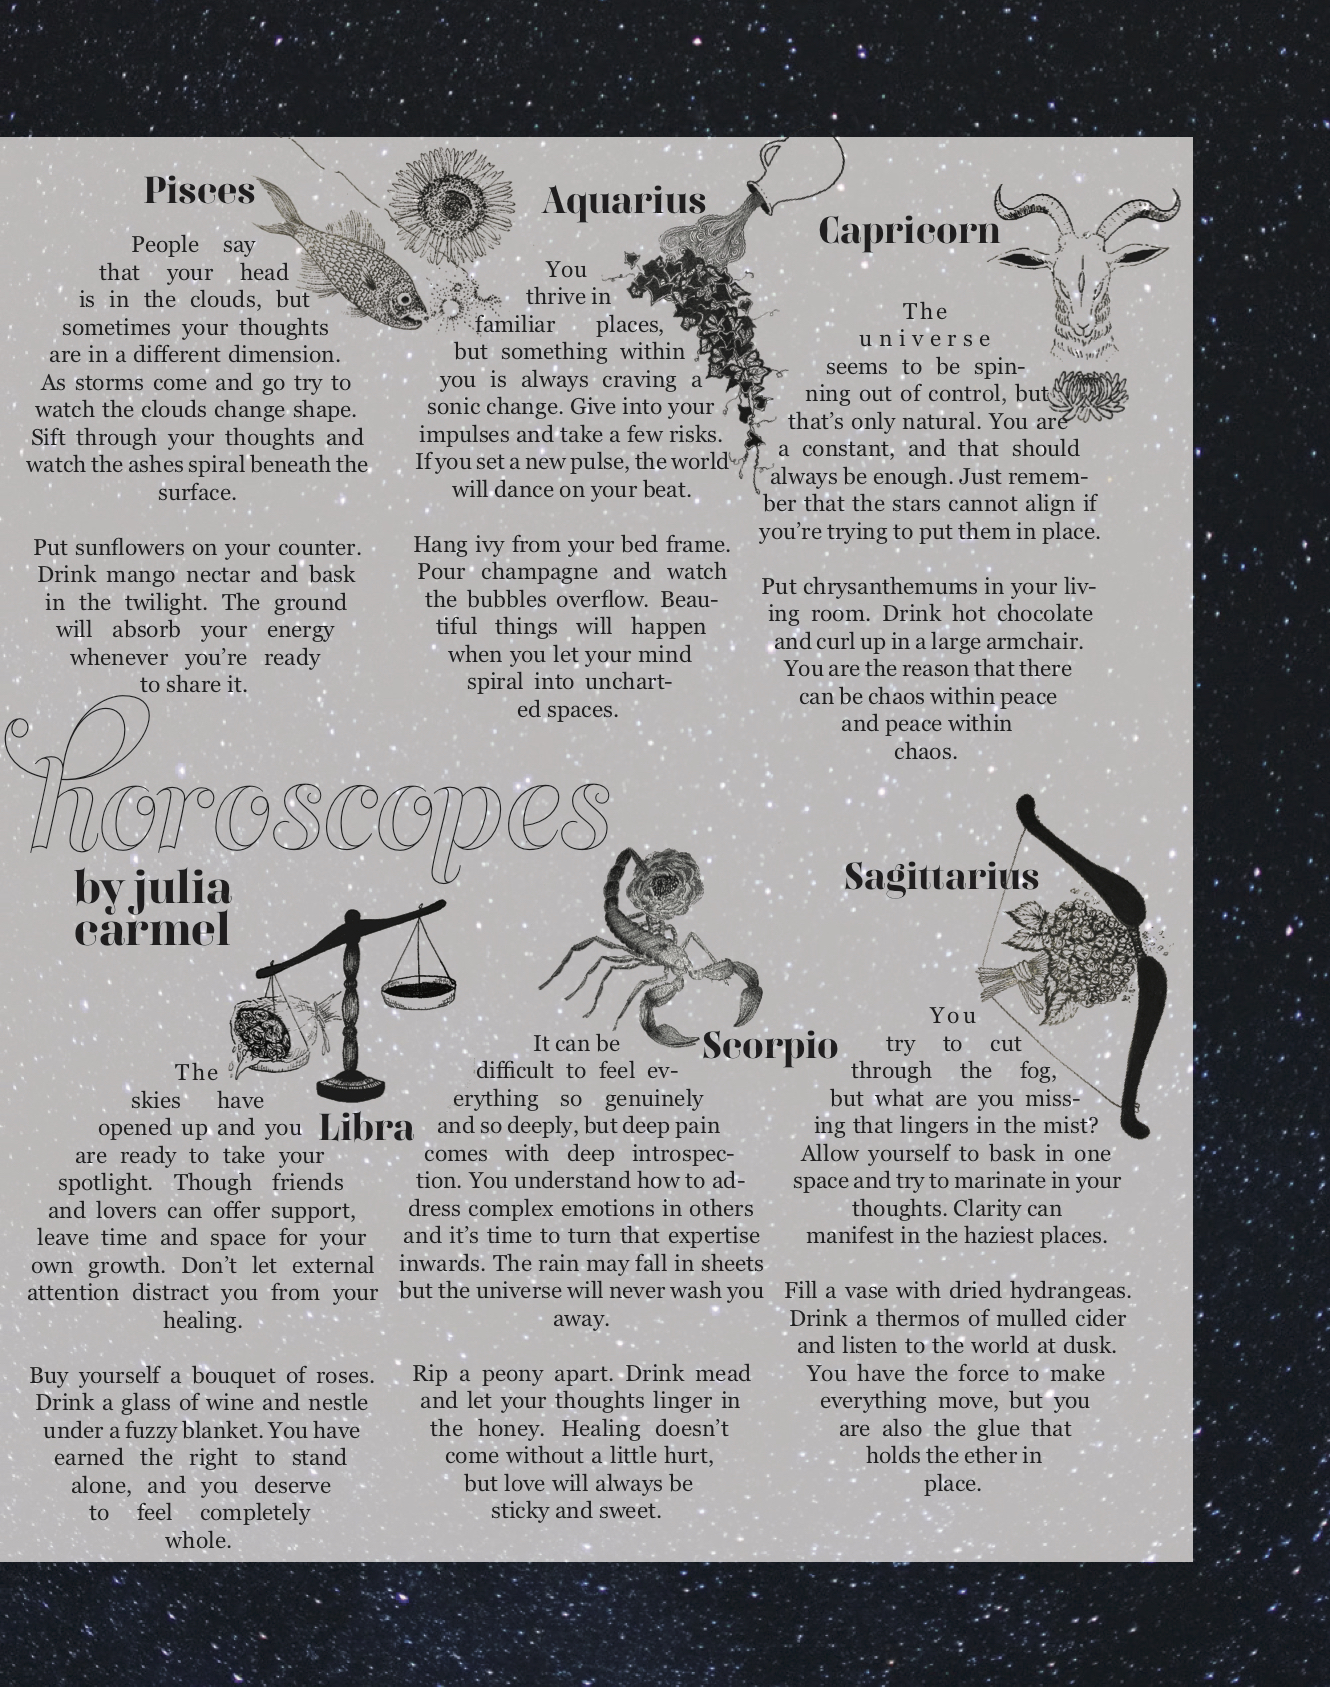 horoscope 2.jpg